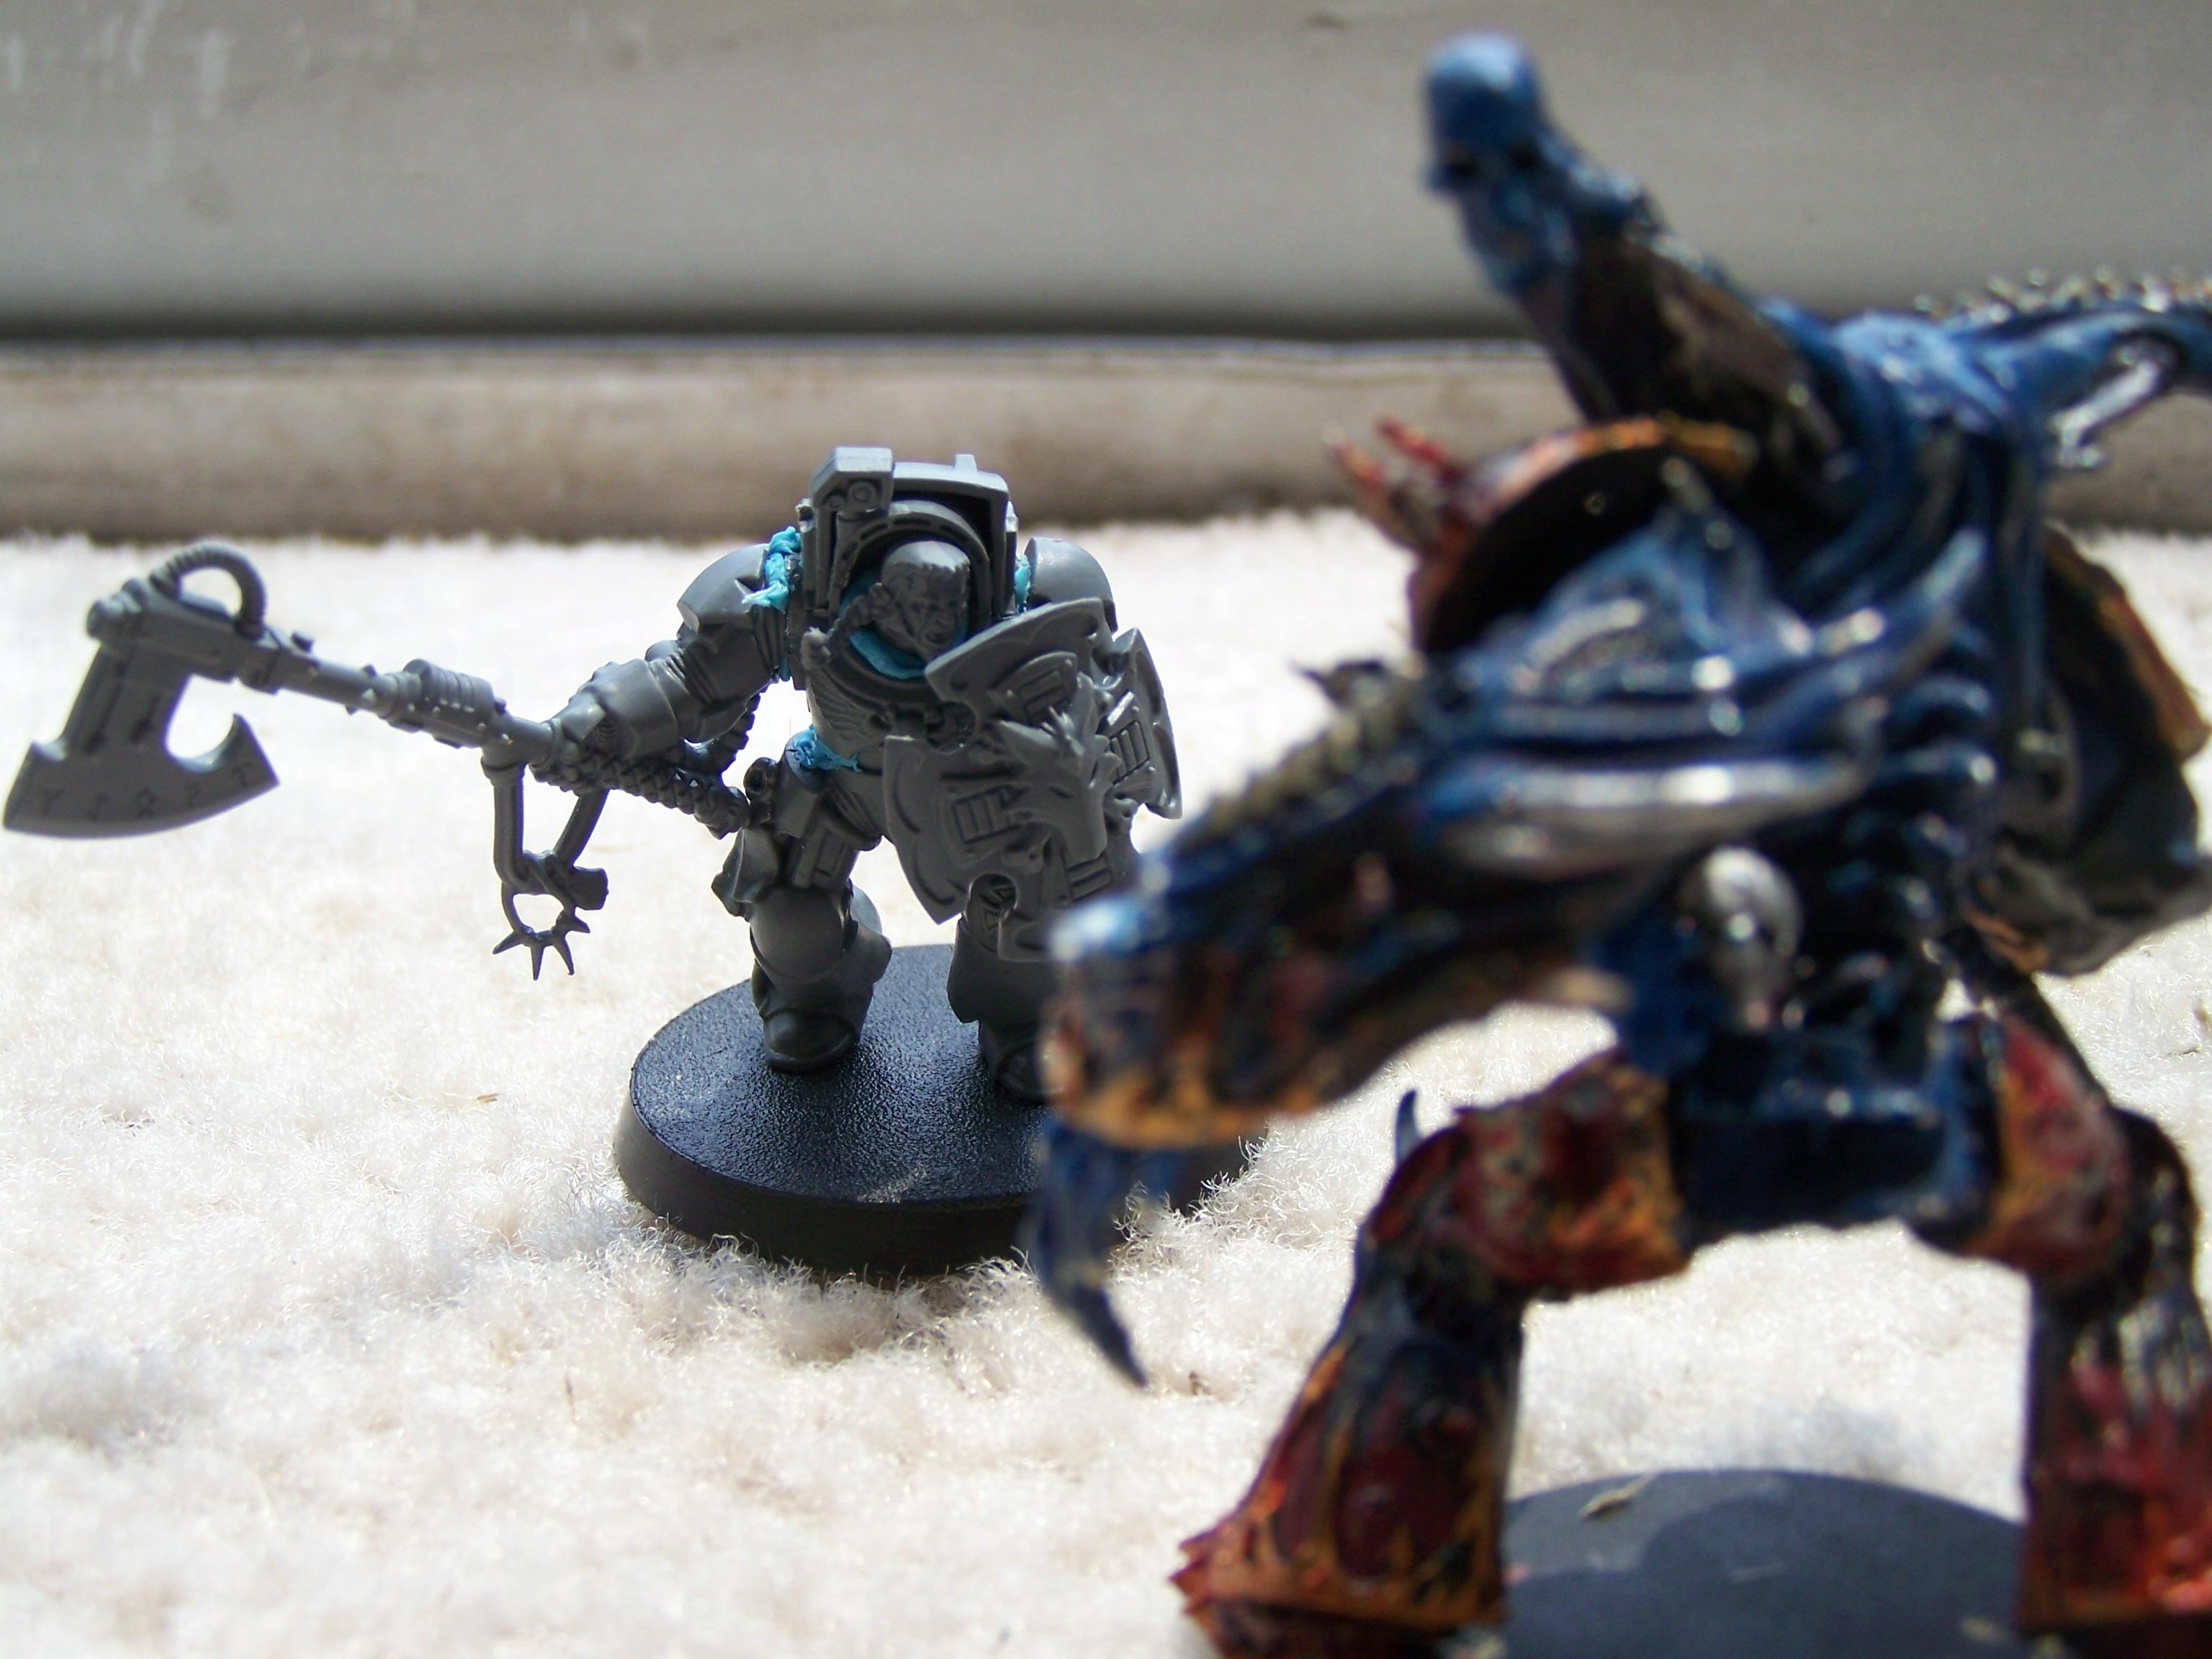 Axe, Chaos, Daemons, Flying, Hive Tyrant, Space Marines, Space Wolves, Terminator Armor, Wolf Guard